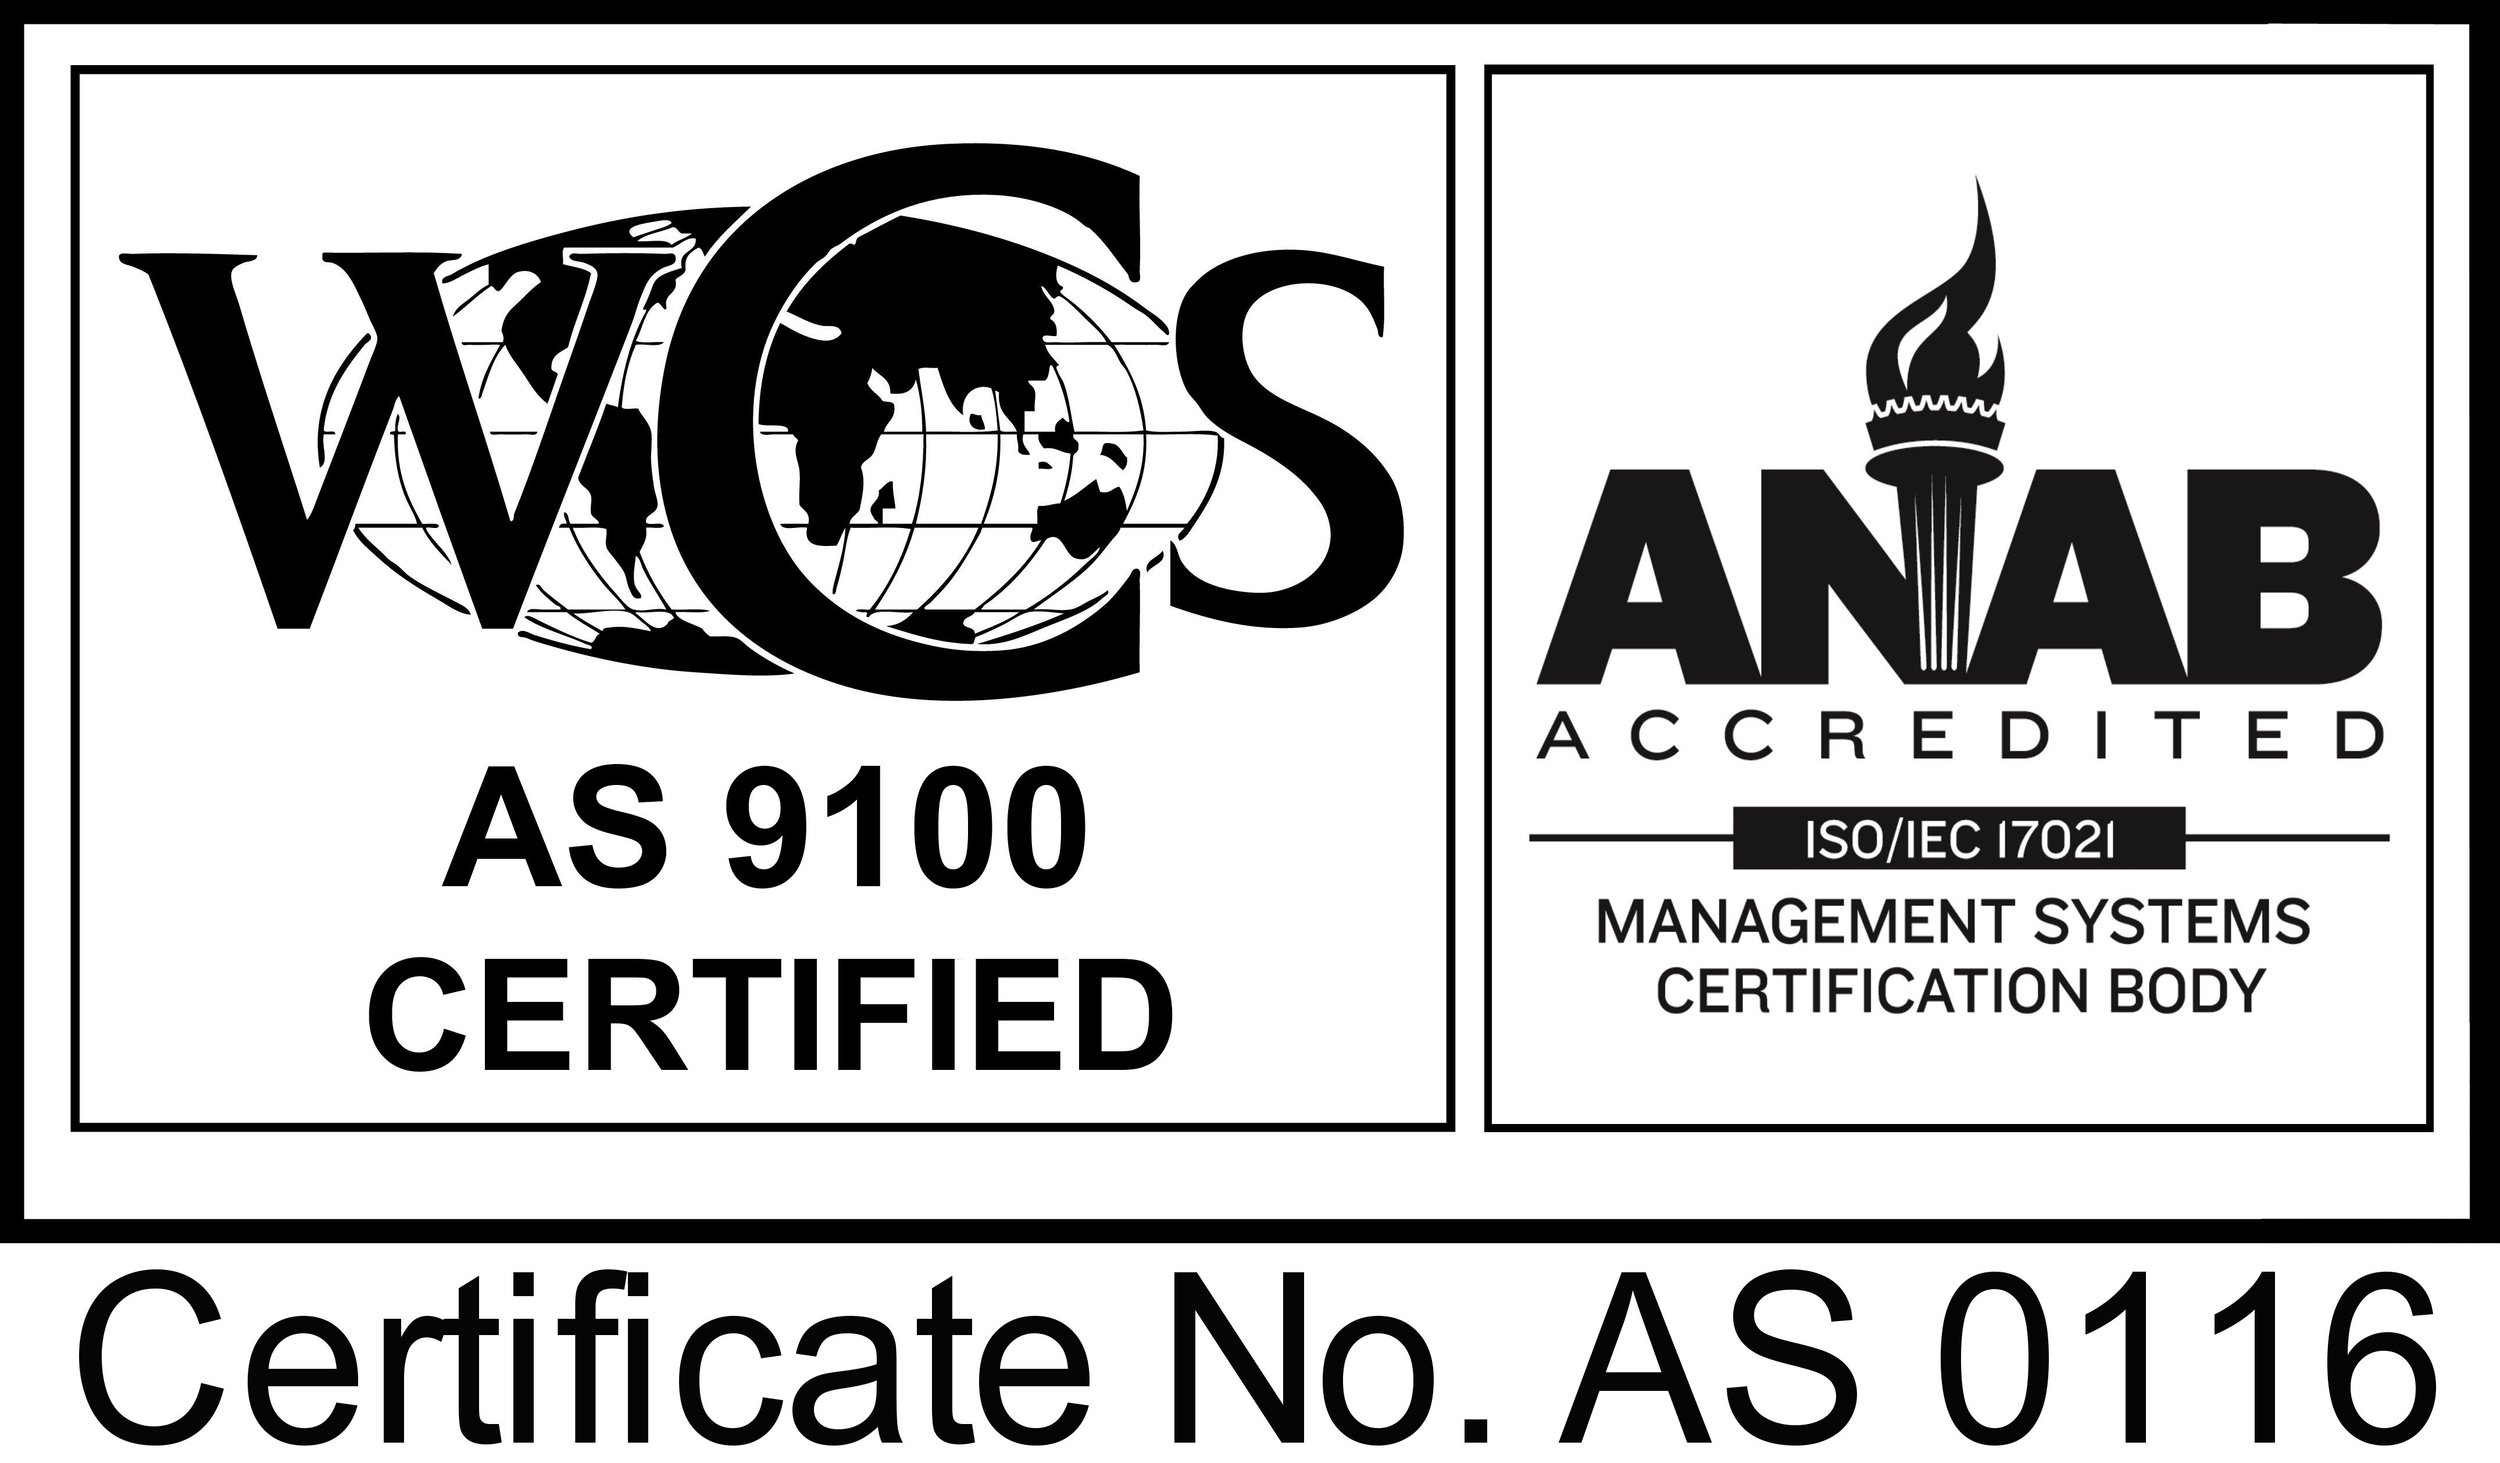 D&J Technologies Inc.-NEW 2015 ANAB AS9100 LOGO 2.jpg